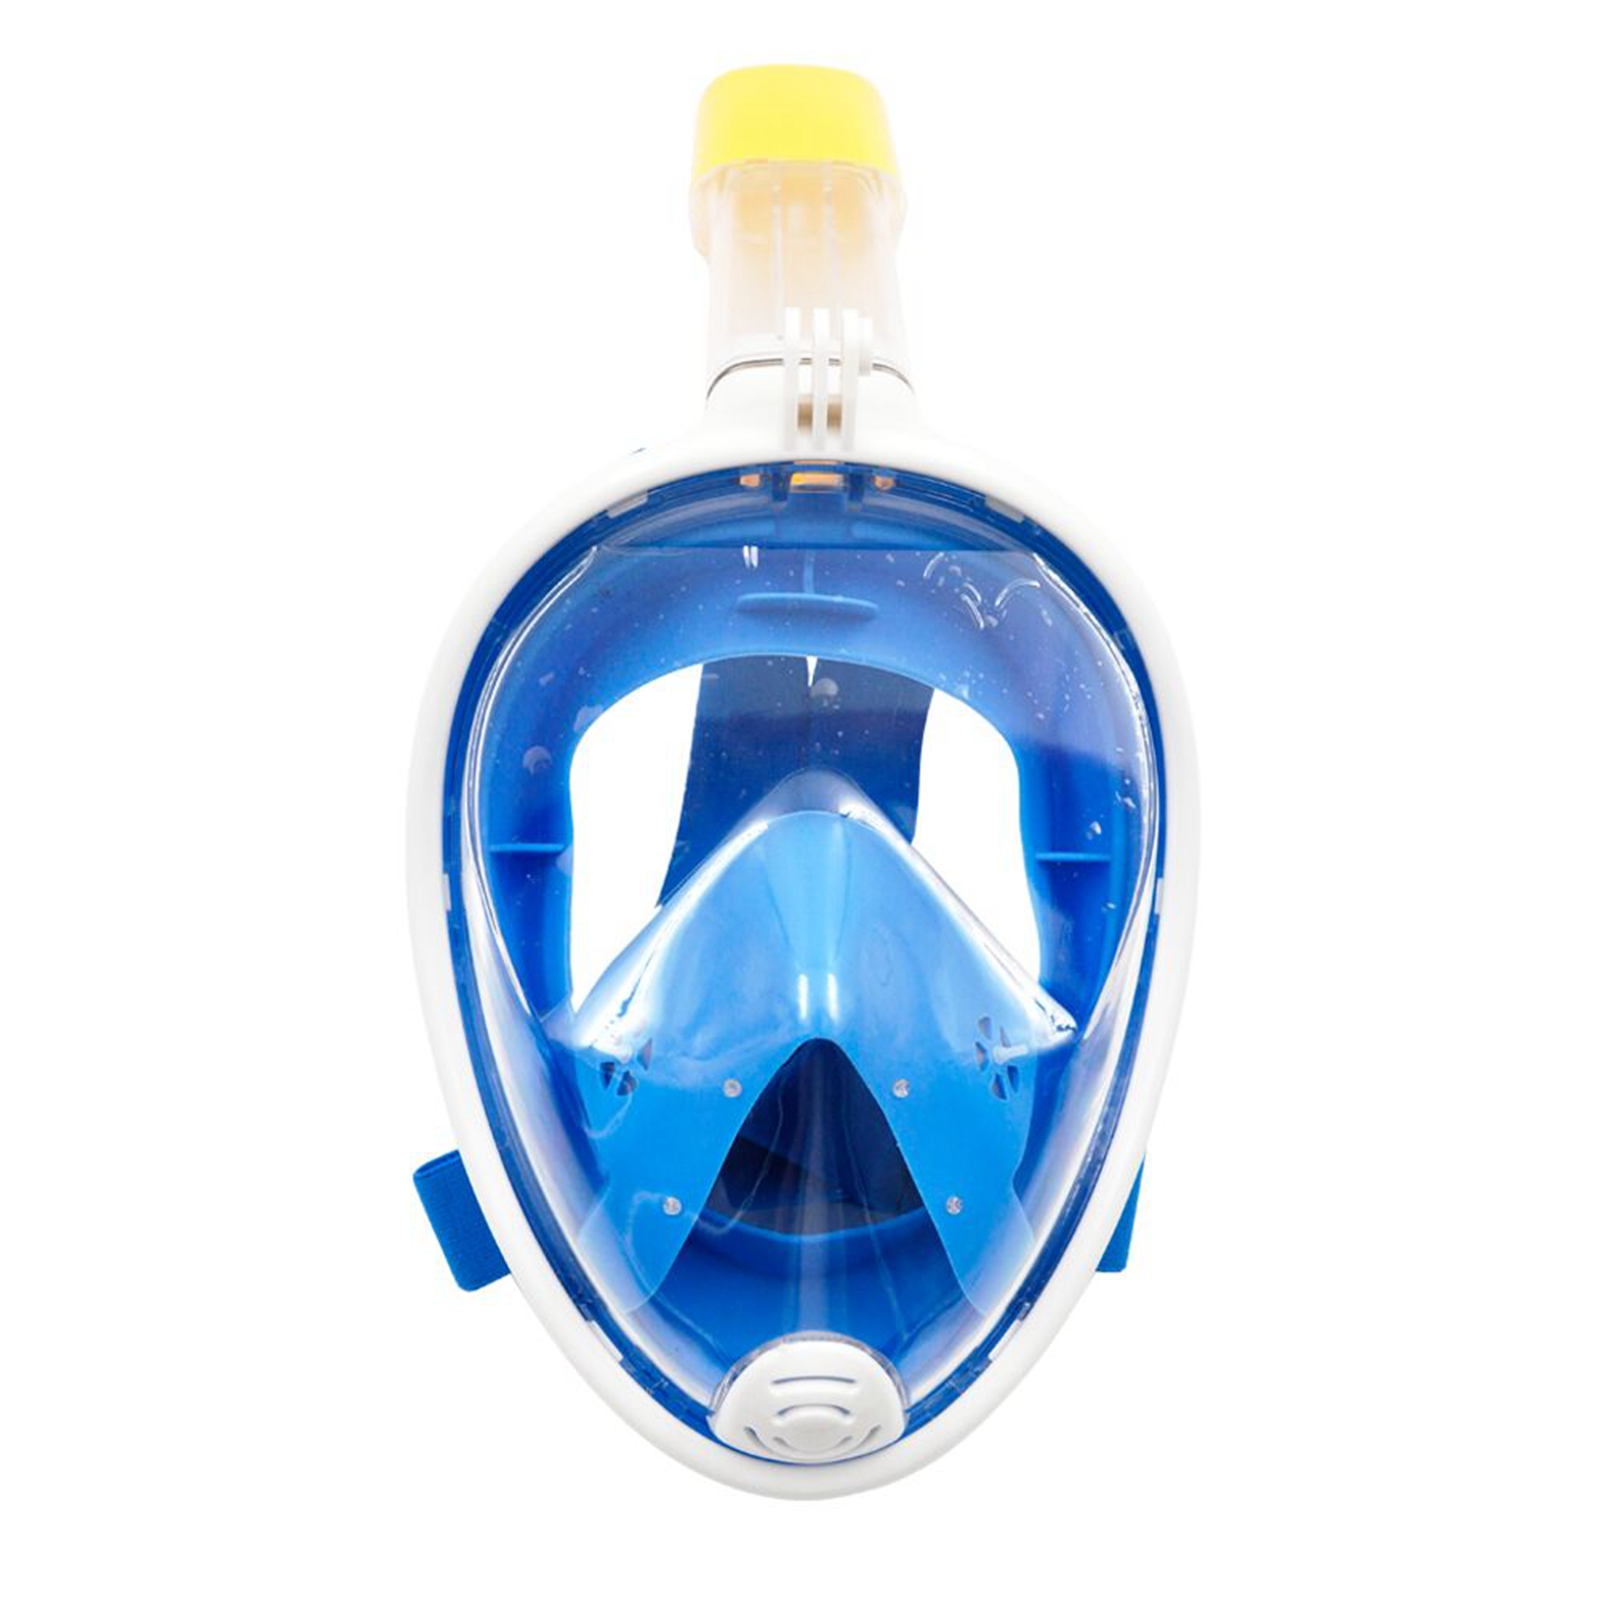 Anti-Fog Swimming Surface Diving Full Face Snorkel Scuba Mask for GoPro Size S M by Cheerwing